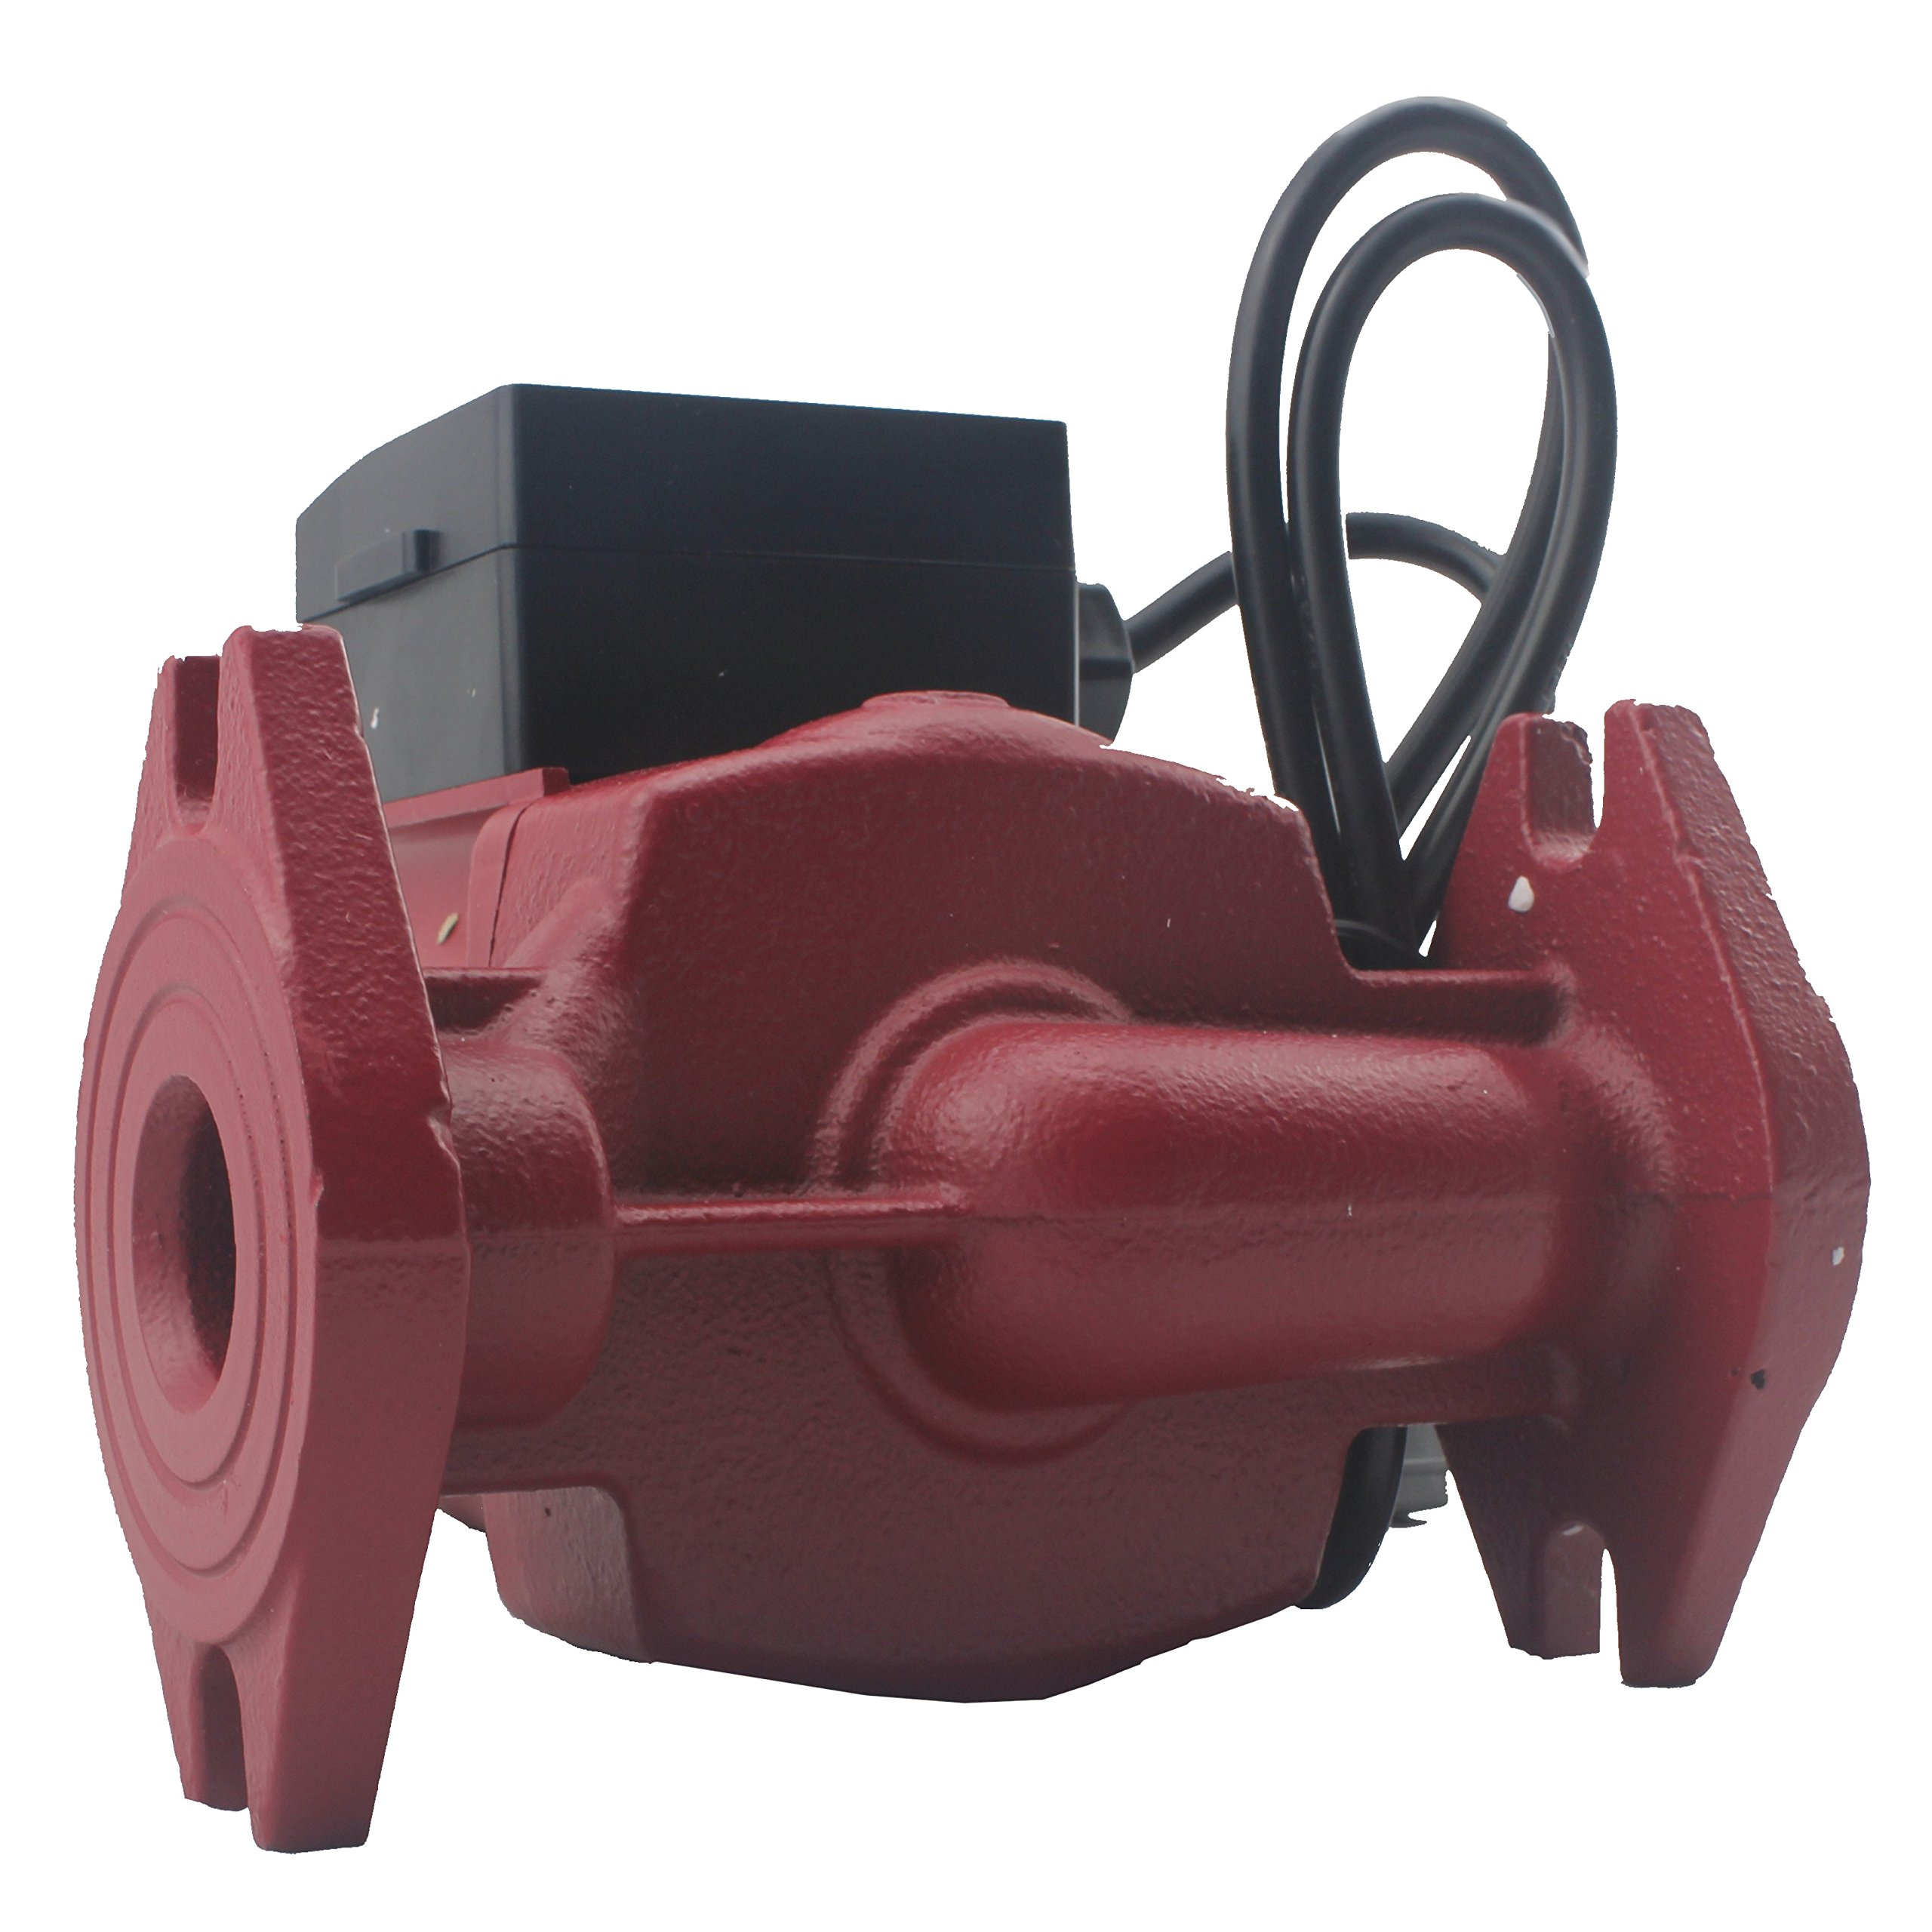 WiseWater Circulation/Circulating Pump with Internal Threaded Flanges - Up to 19.7 Feet Head Range, 3 Speed Switchable for Hydronic Radiant Heating and Plumbing by AB (Image #2)